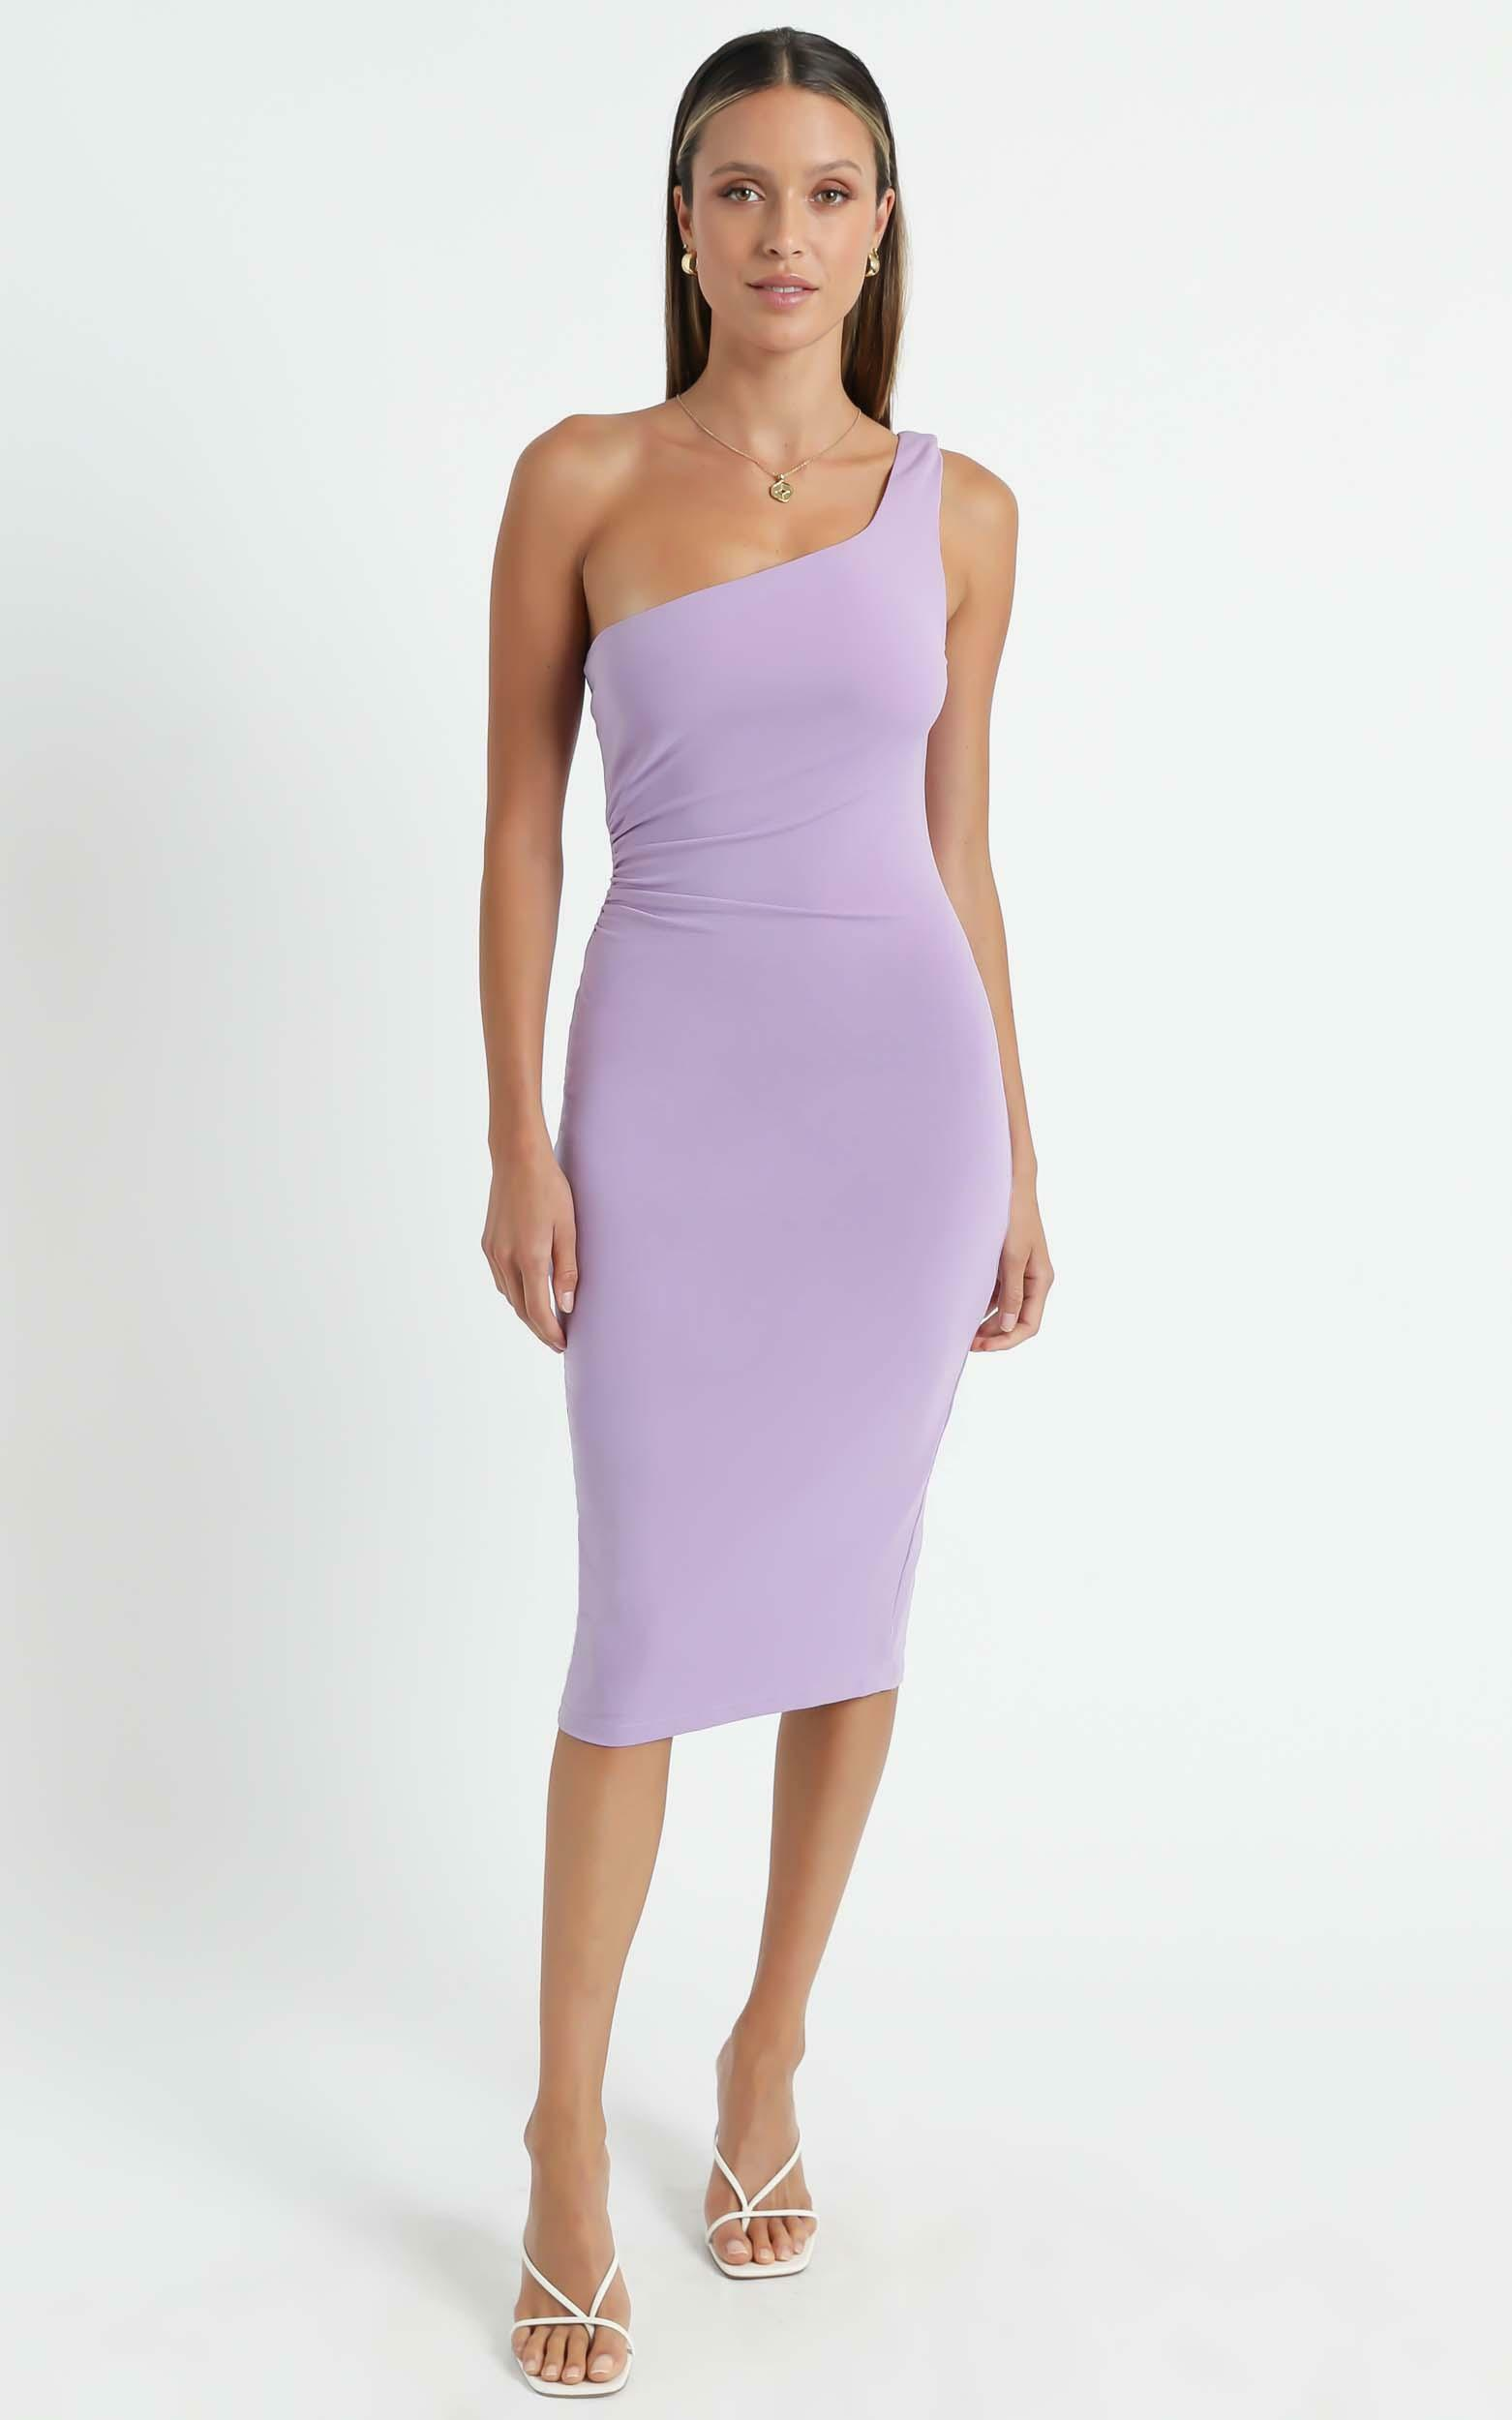 Got Me Looking Dress In Lilac - 6 (XS), Purple, hi-res image number null